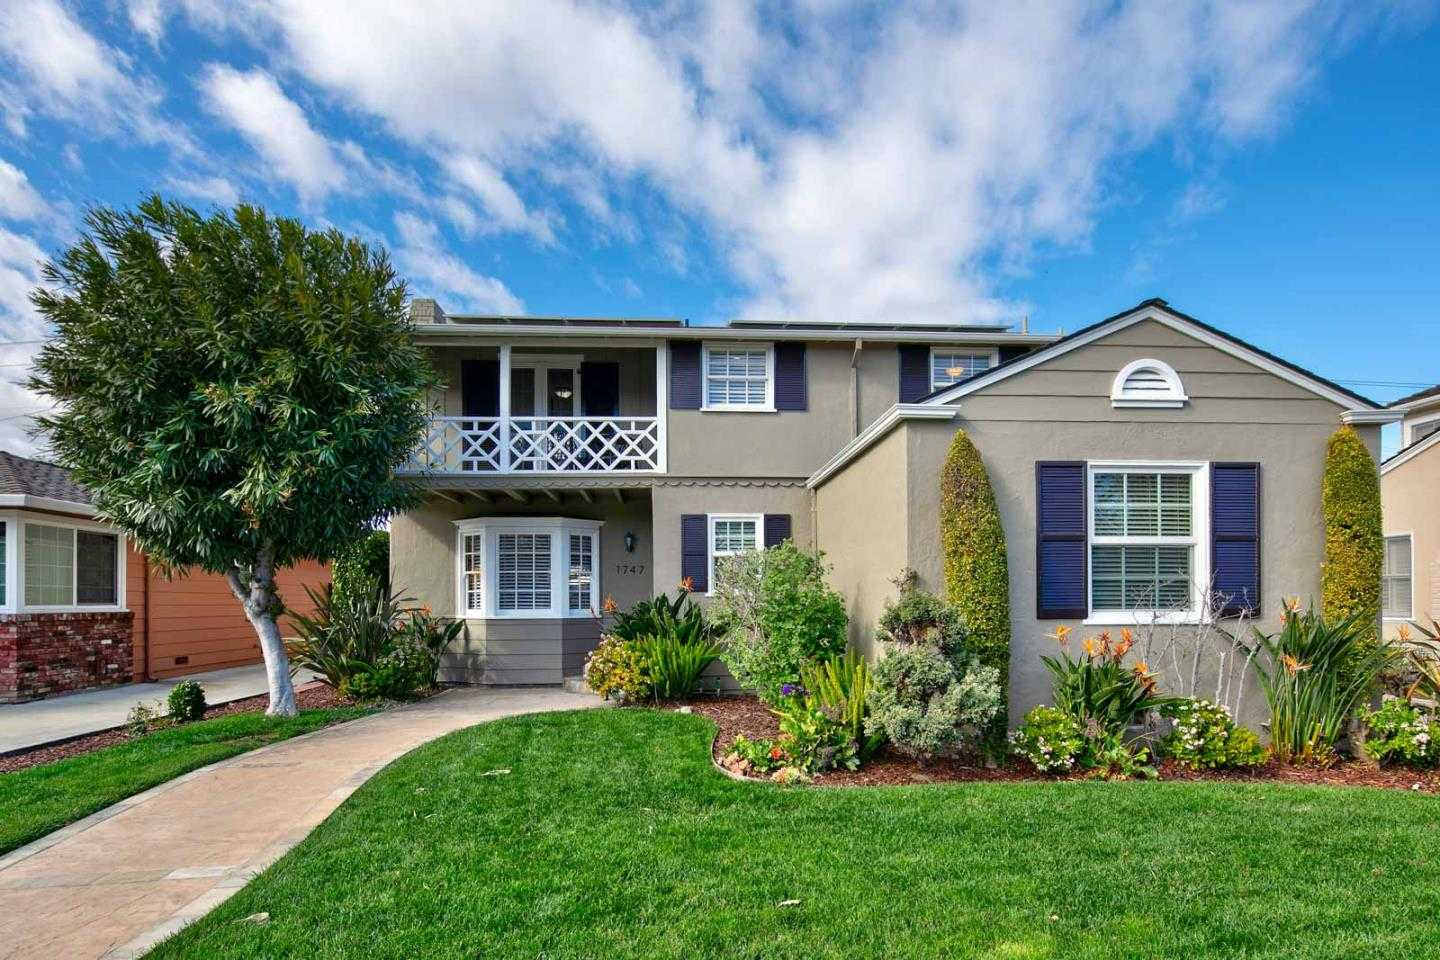 $1,950,000 - 3Br/3Ba -  for Sale in San Jose